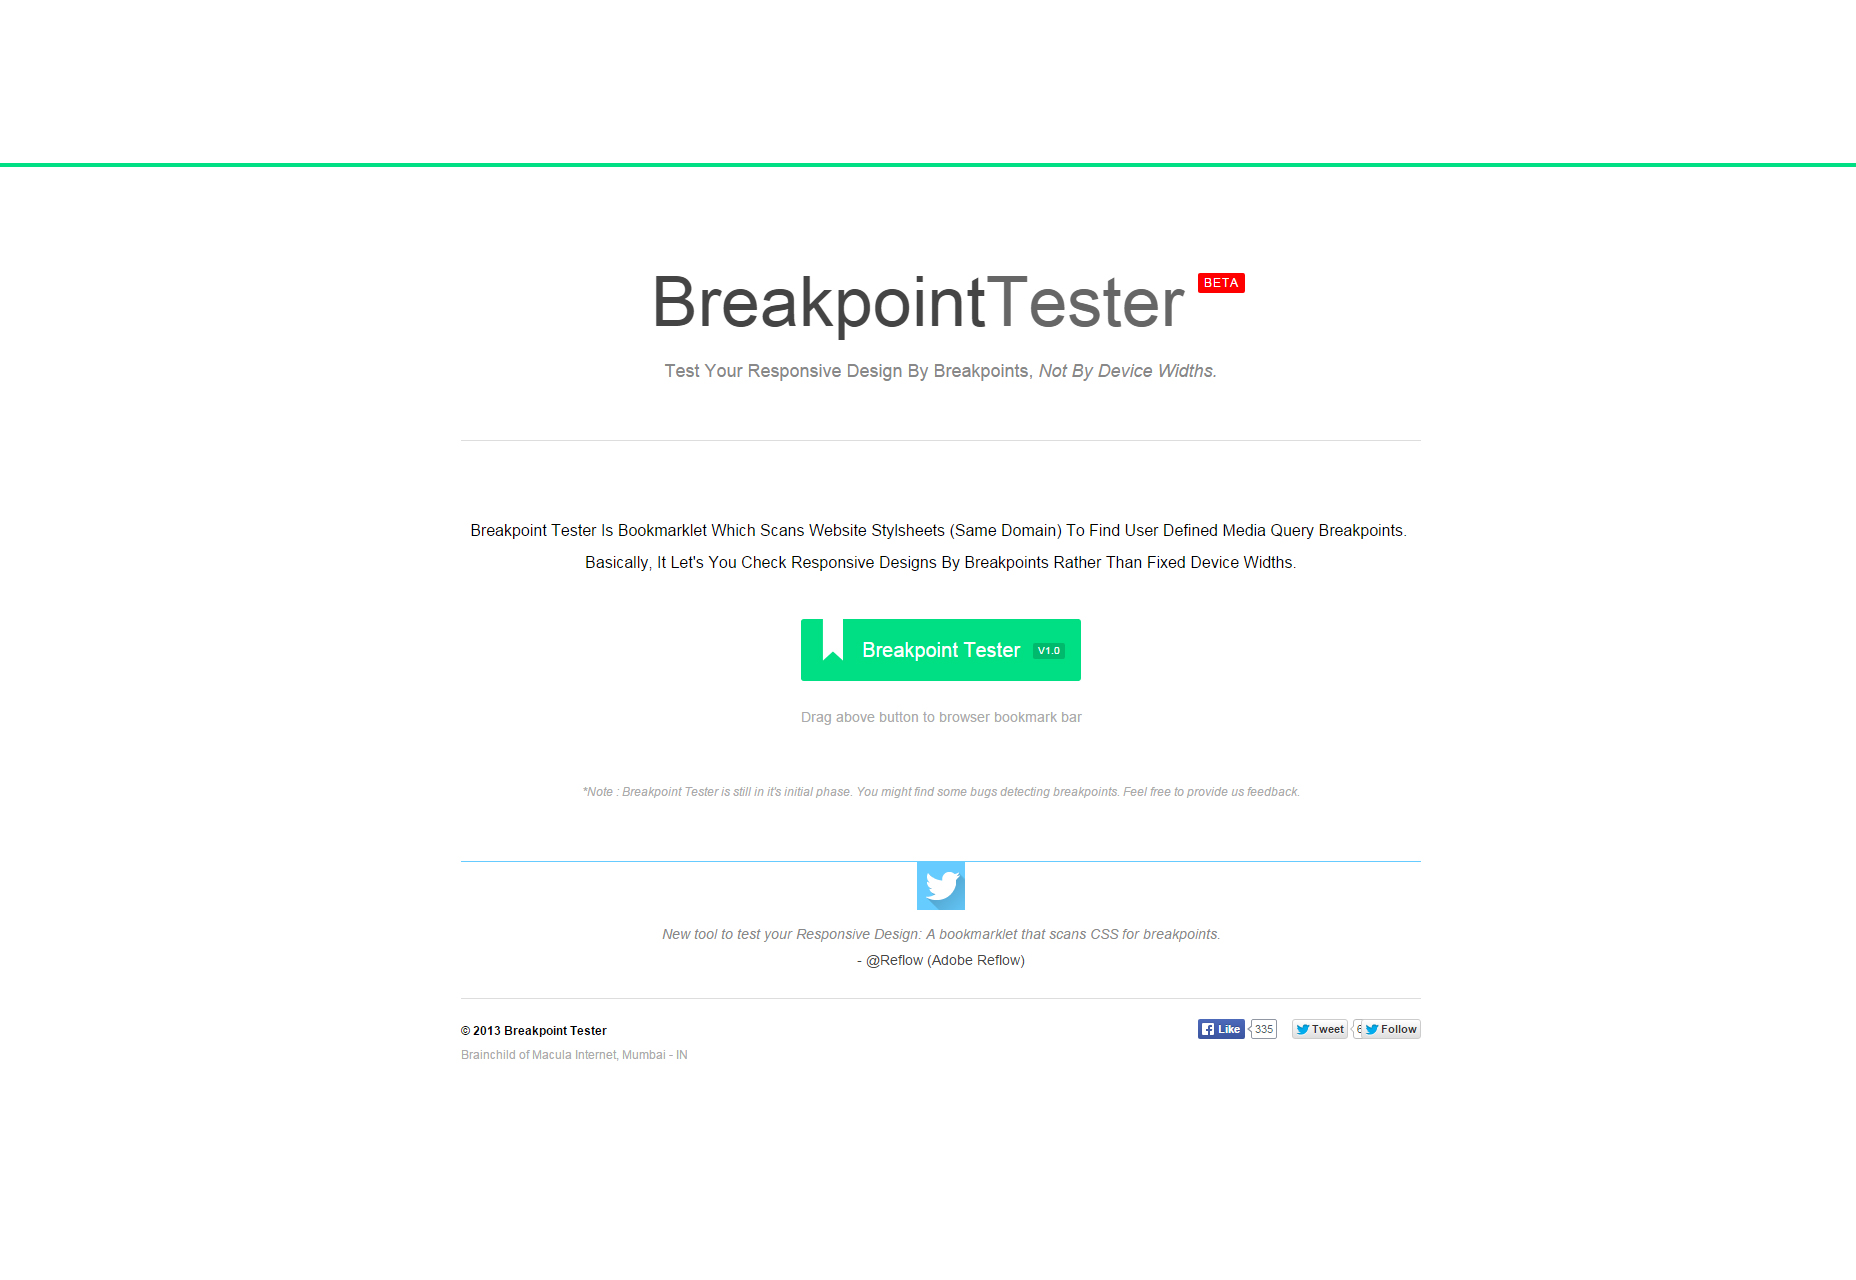 BreakpointTester: Breakpoint Test Bookmarklet para diseños receptivos